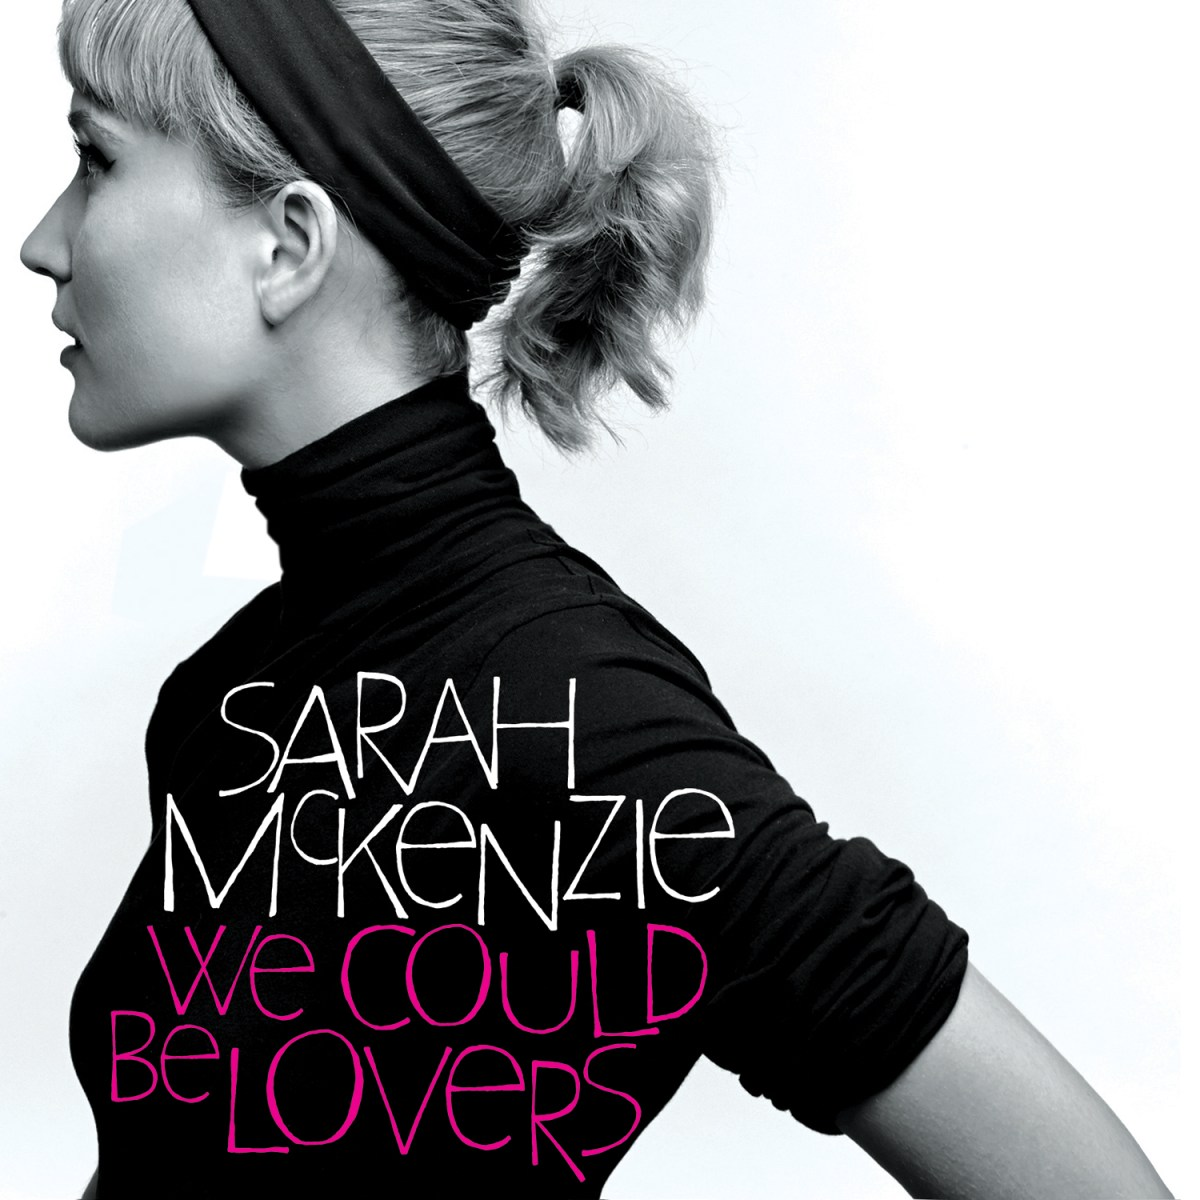 New release: Sarah McKenzie 'We could be lovers'